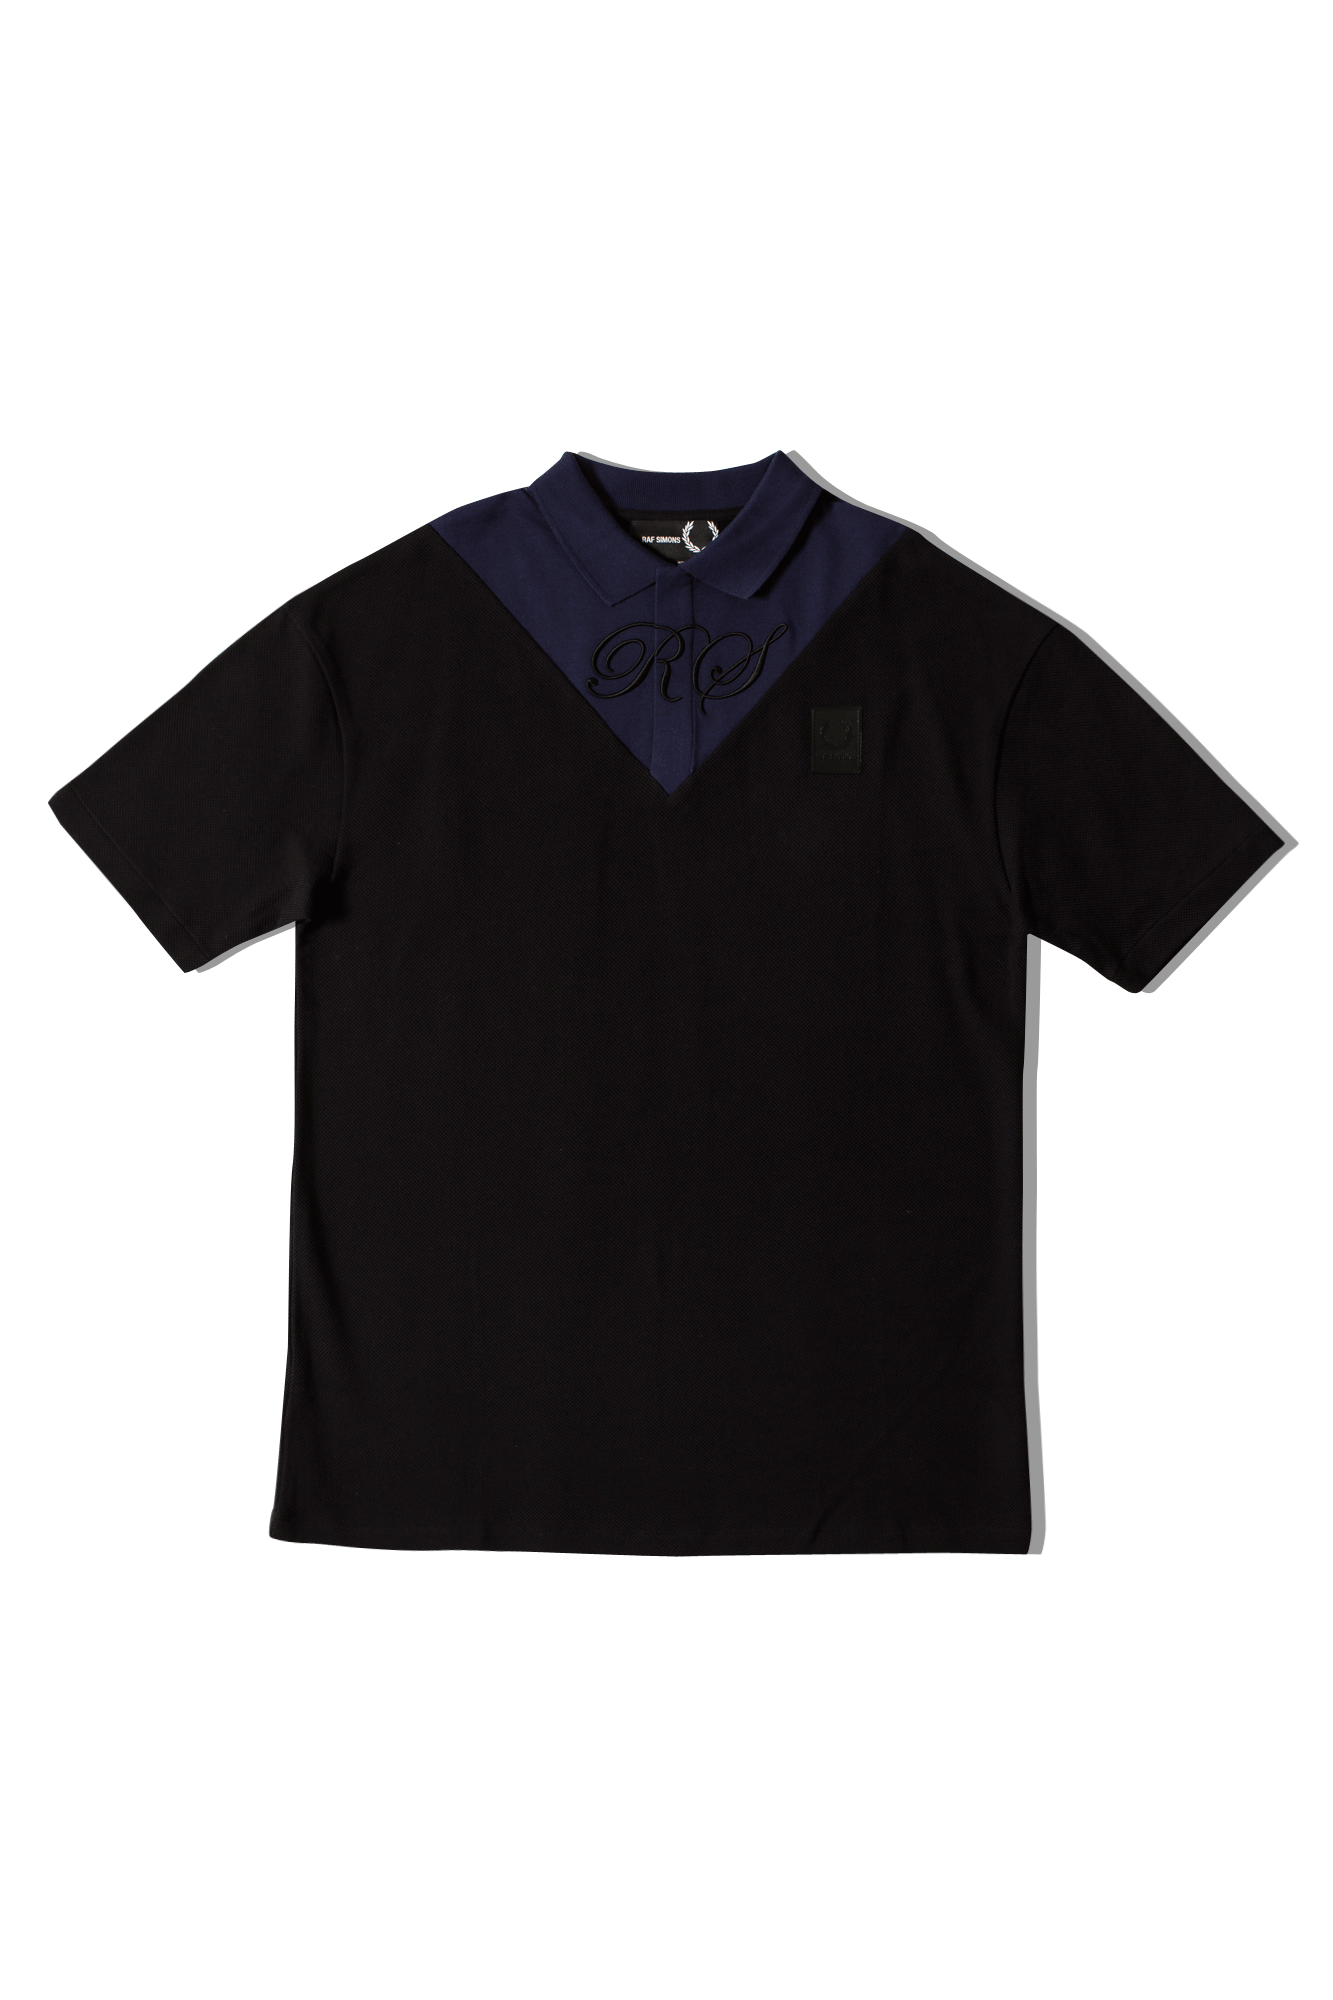 Oversized V-Insert Pique Polo Shirt Nero